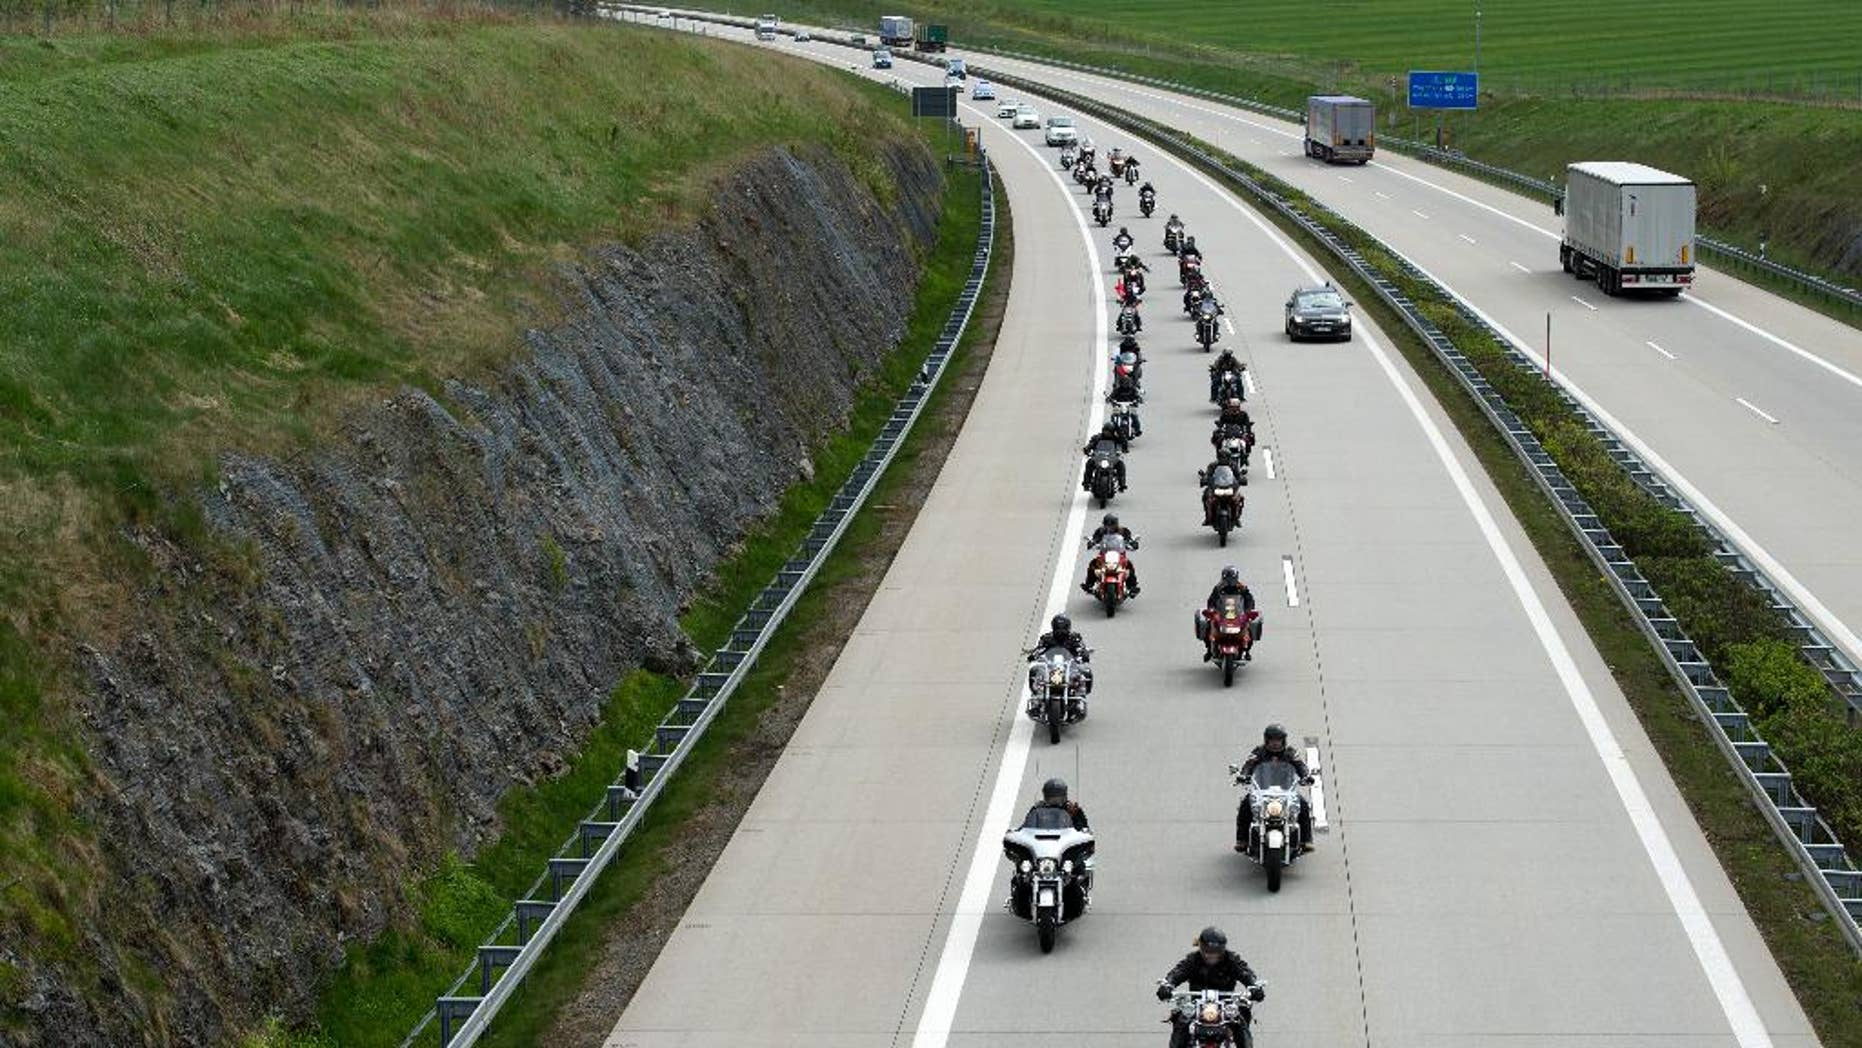 Members of the Russian motorcycle club 'Night wolves' as well as supporters ride their motorbikes along a motorway near Breitenau, Germany, May 7,2015. They are expected to arrive in Berlin on May 9, as part of their tour from Moscow to the German capital. Russia will celebrate the anniversary of the Soviet Union's World War II victory over Nazi Germany on the same day. (Arno Burgi/dpa via AP)